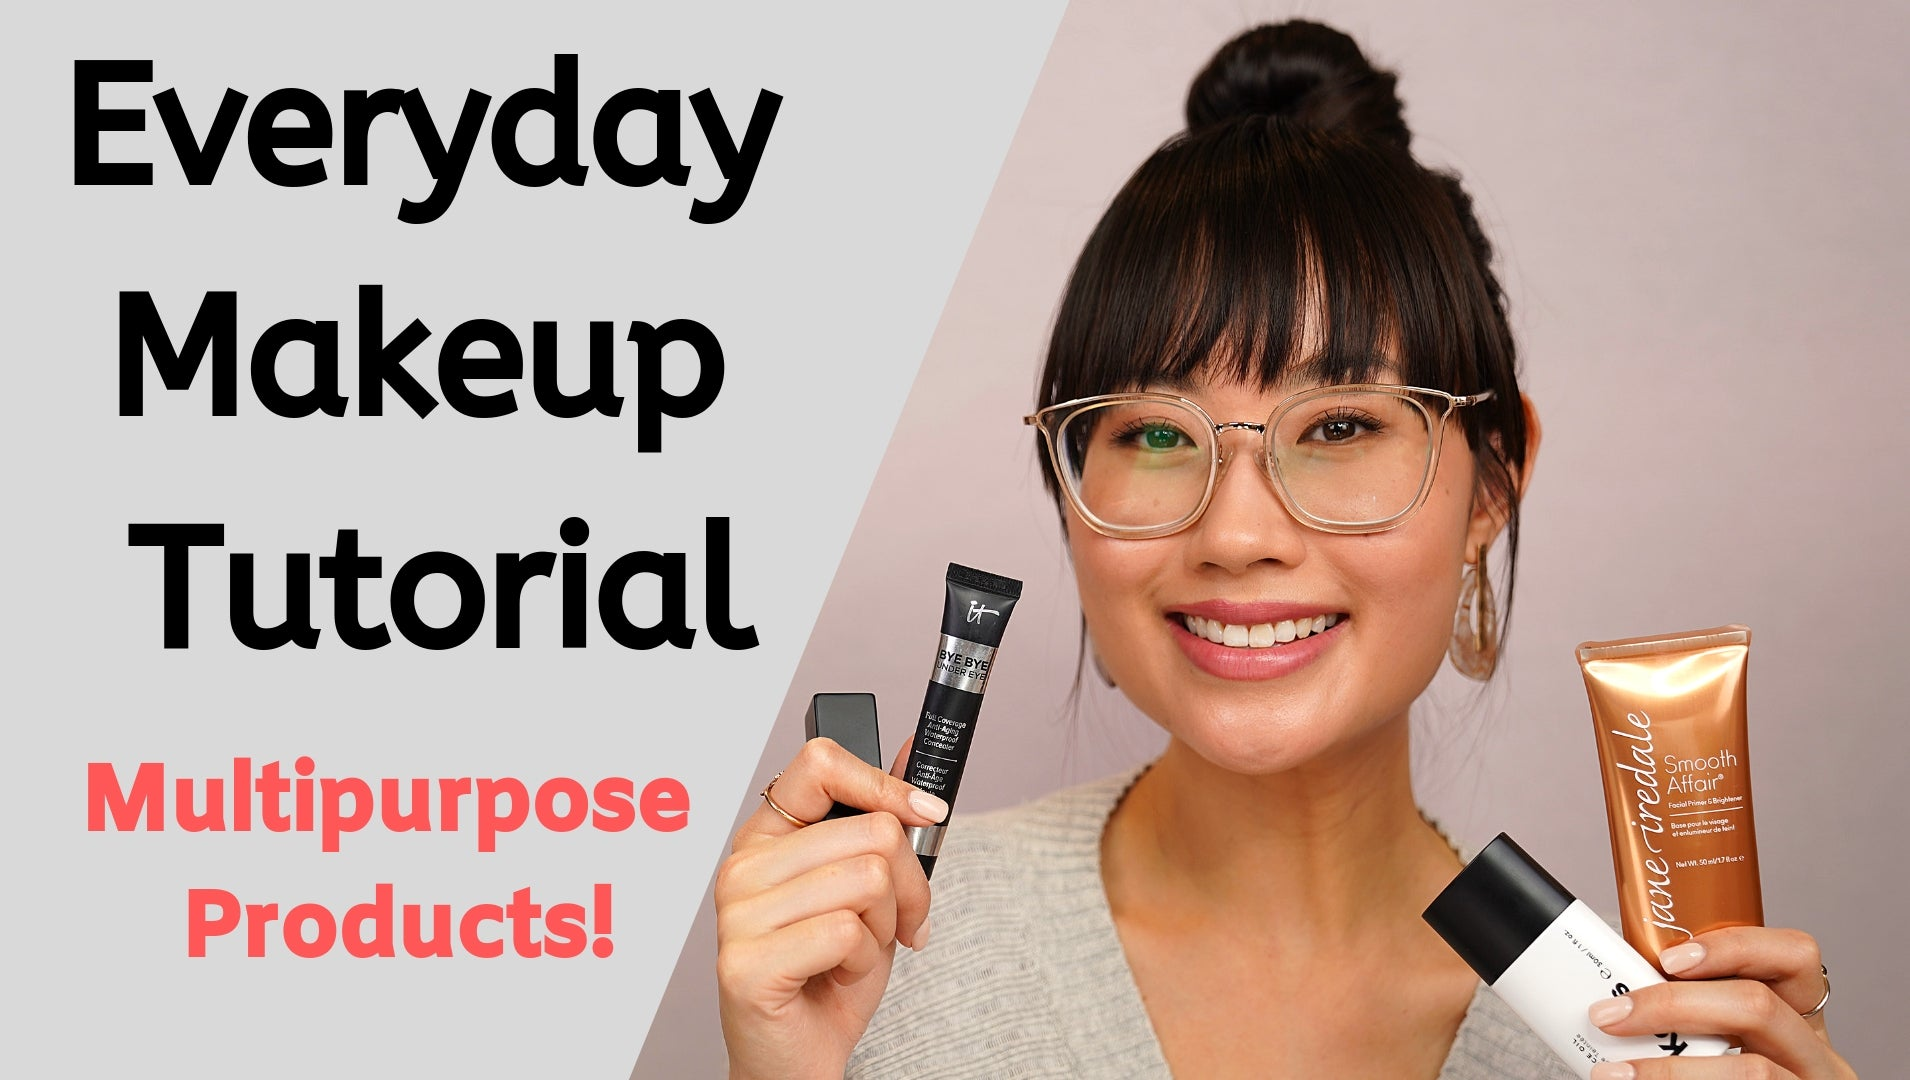 Everyday Makeup Tutorial 2019 | Multipurpose Products